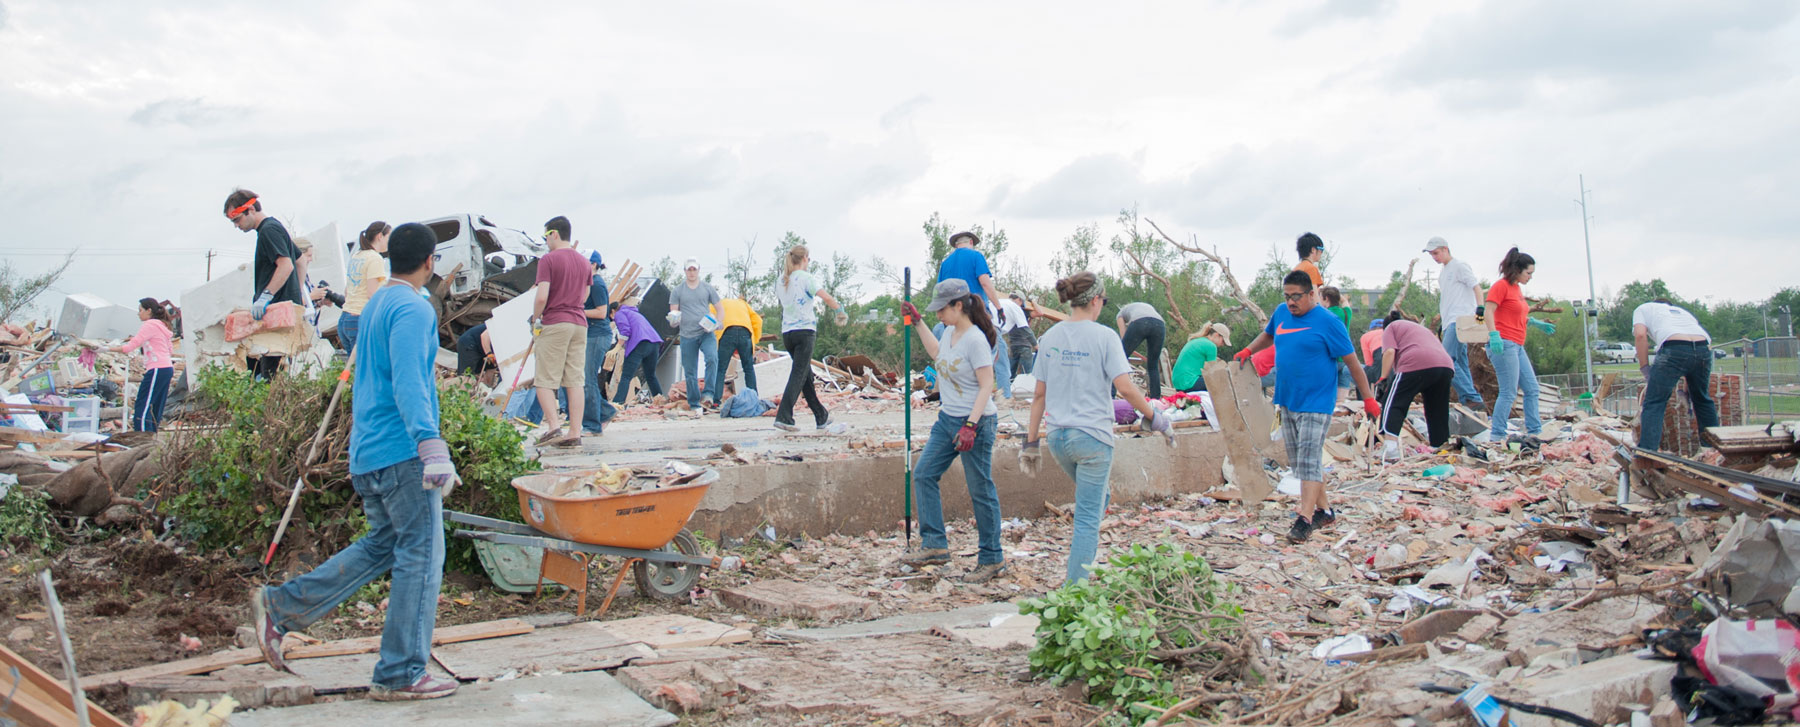 Volunteers serve families after the May 2013 Moore/OKC Tornado